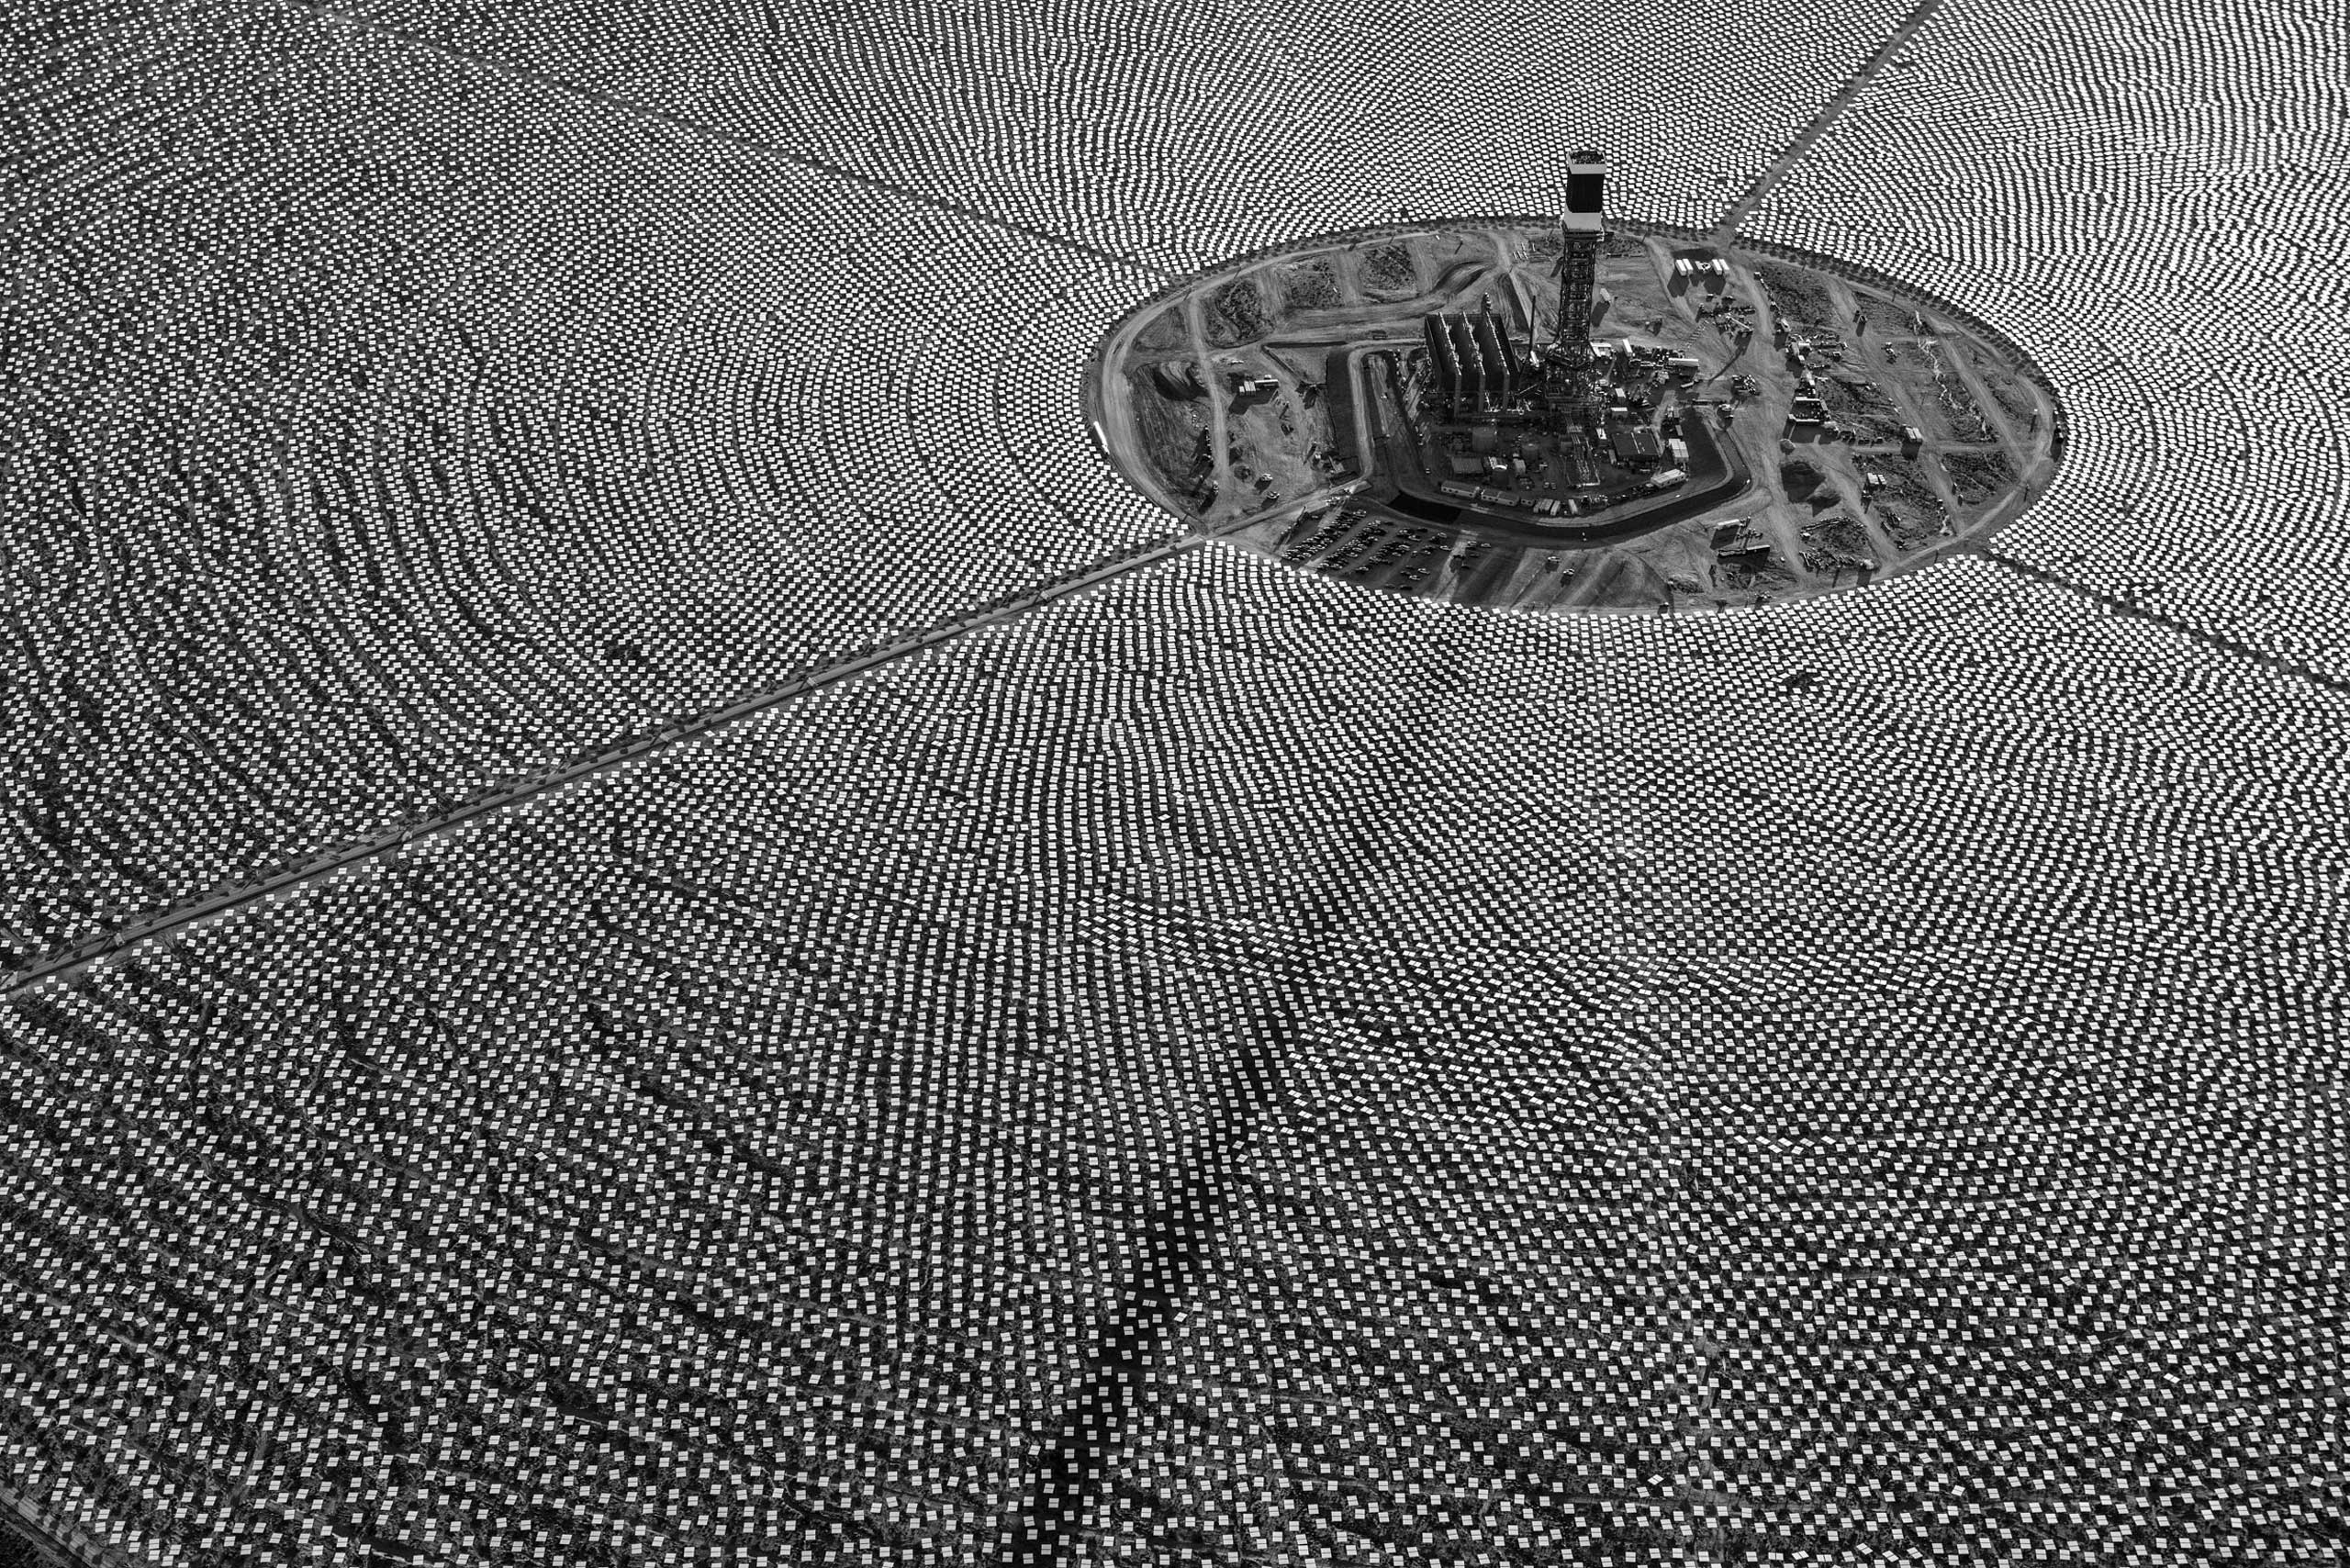 Mirrored heliostats that reflect and concentrate desert sunshine surround a tower at the Ivanpah solar power station in the Mojave Desert, California.